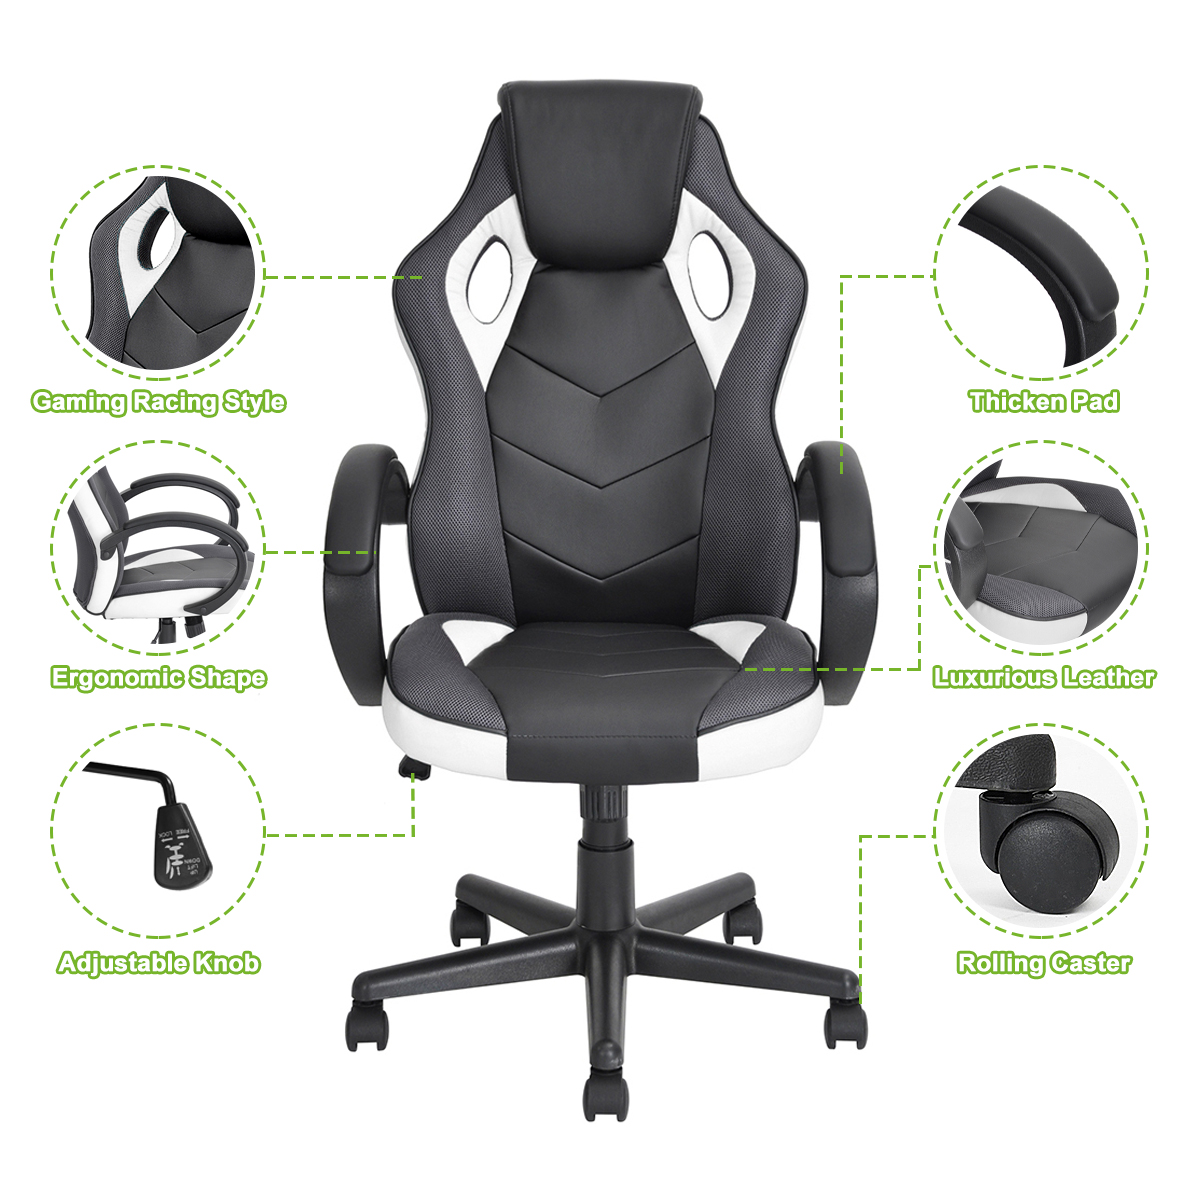 thumbnail 33 - Gaming Racing Chair Office High Back Ergonomic Computer Desk Swivel PU Leather